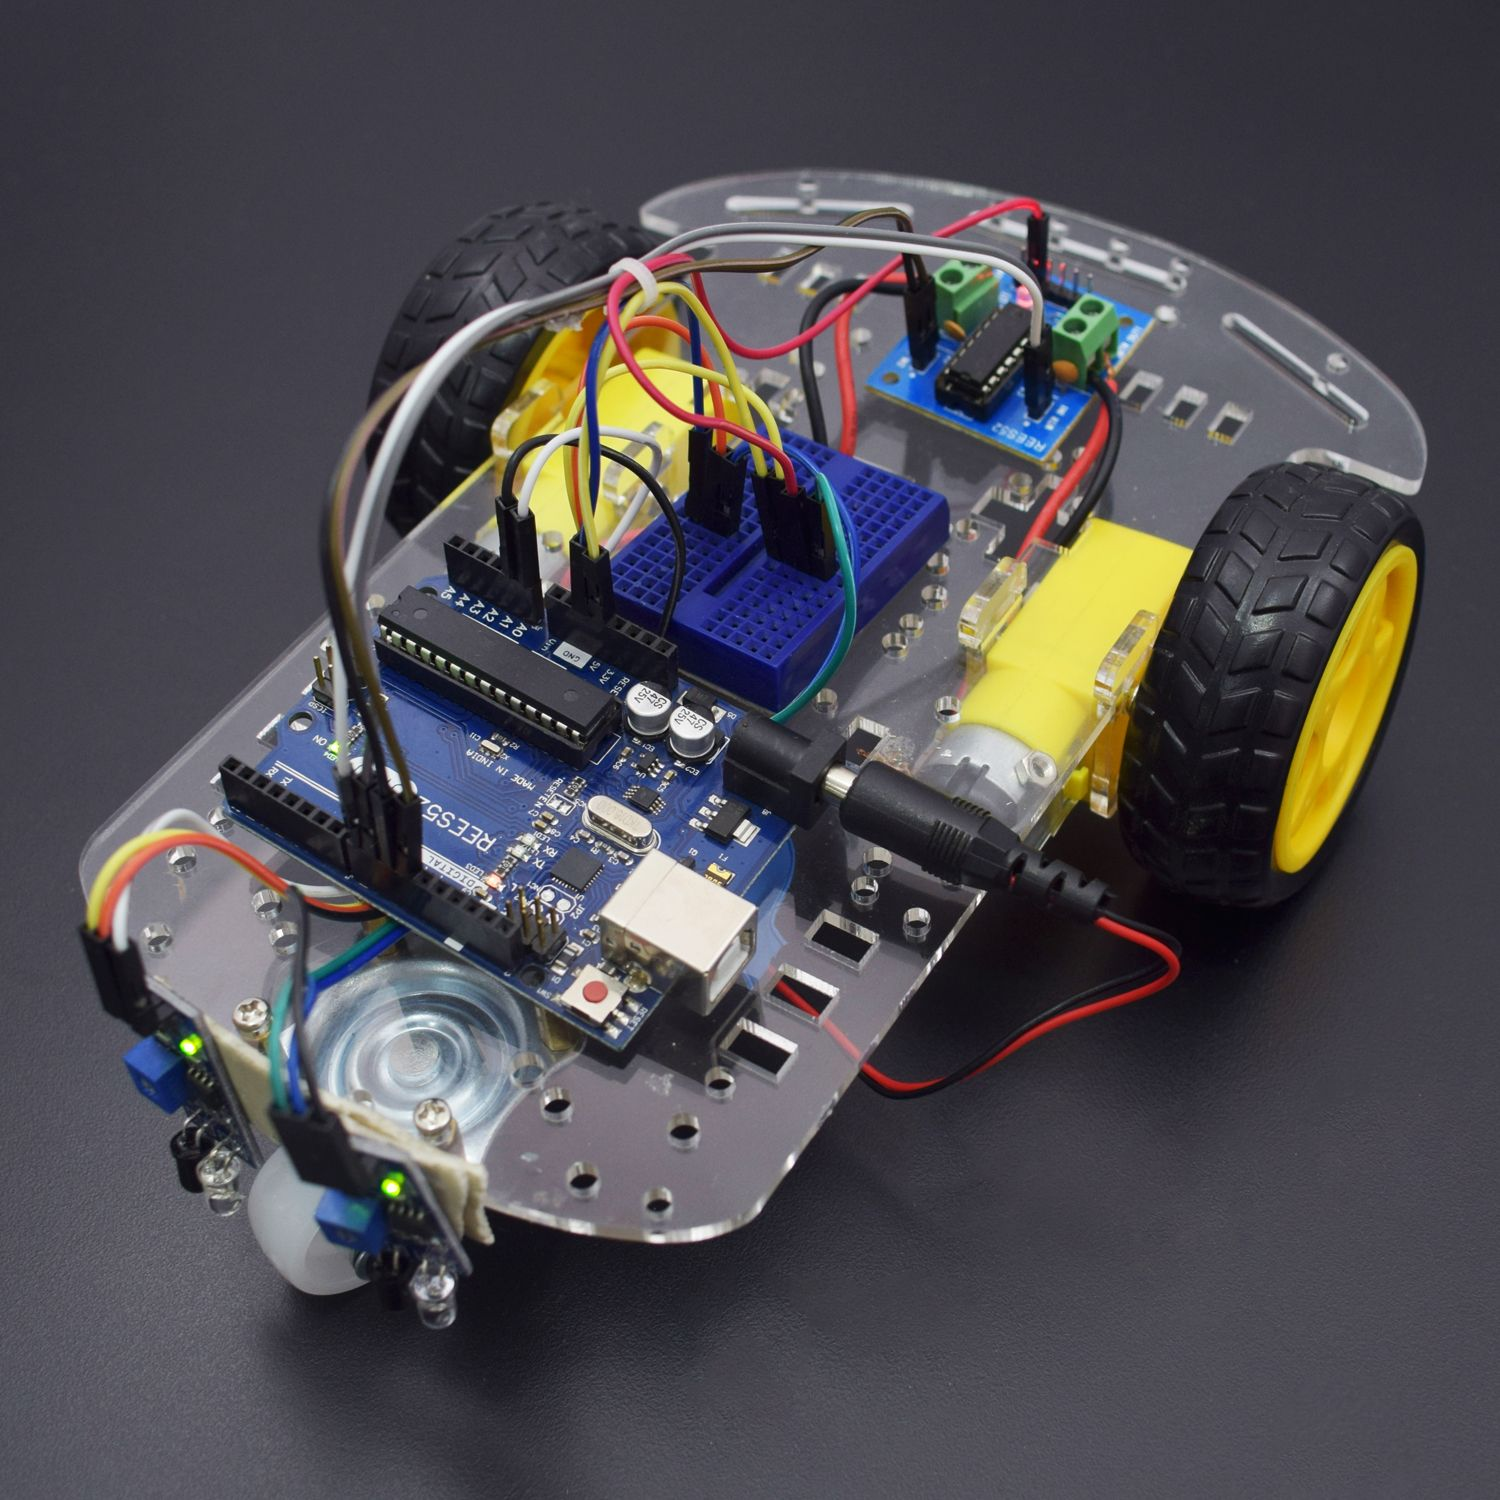 Make A Line Follower Robot Using L293d Motor Driver Module On Interfacing With Arduino Uno Kt682